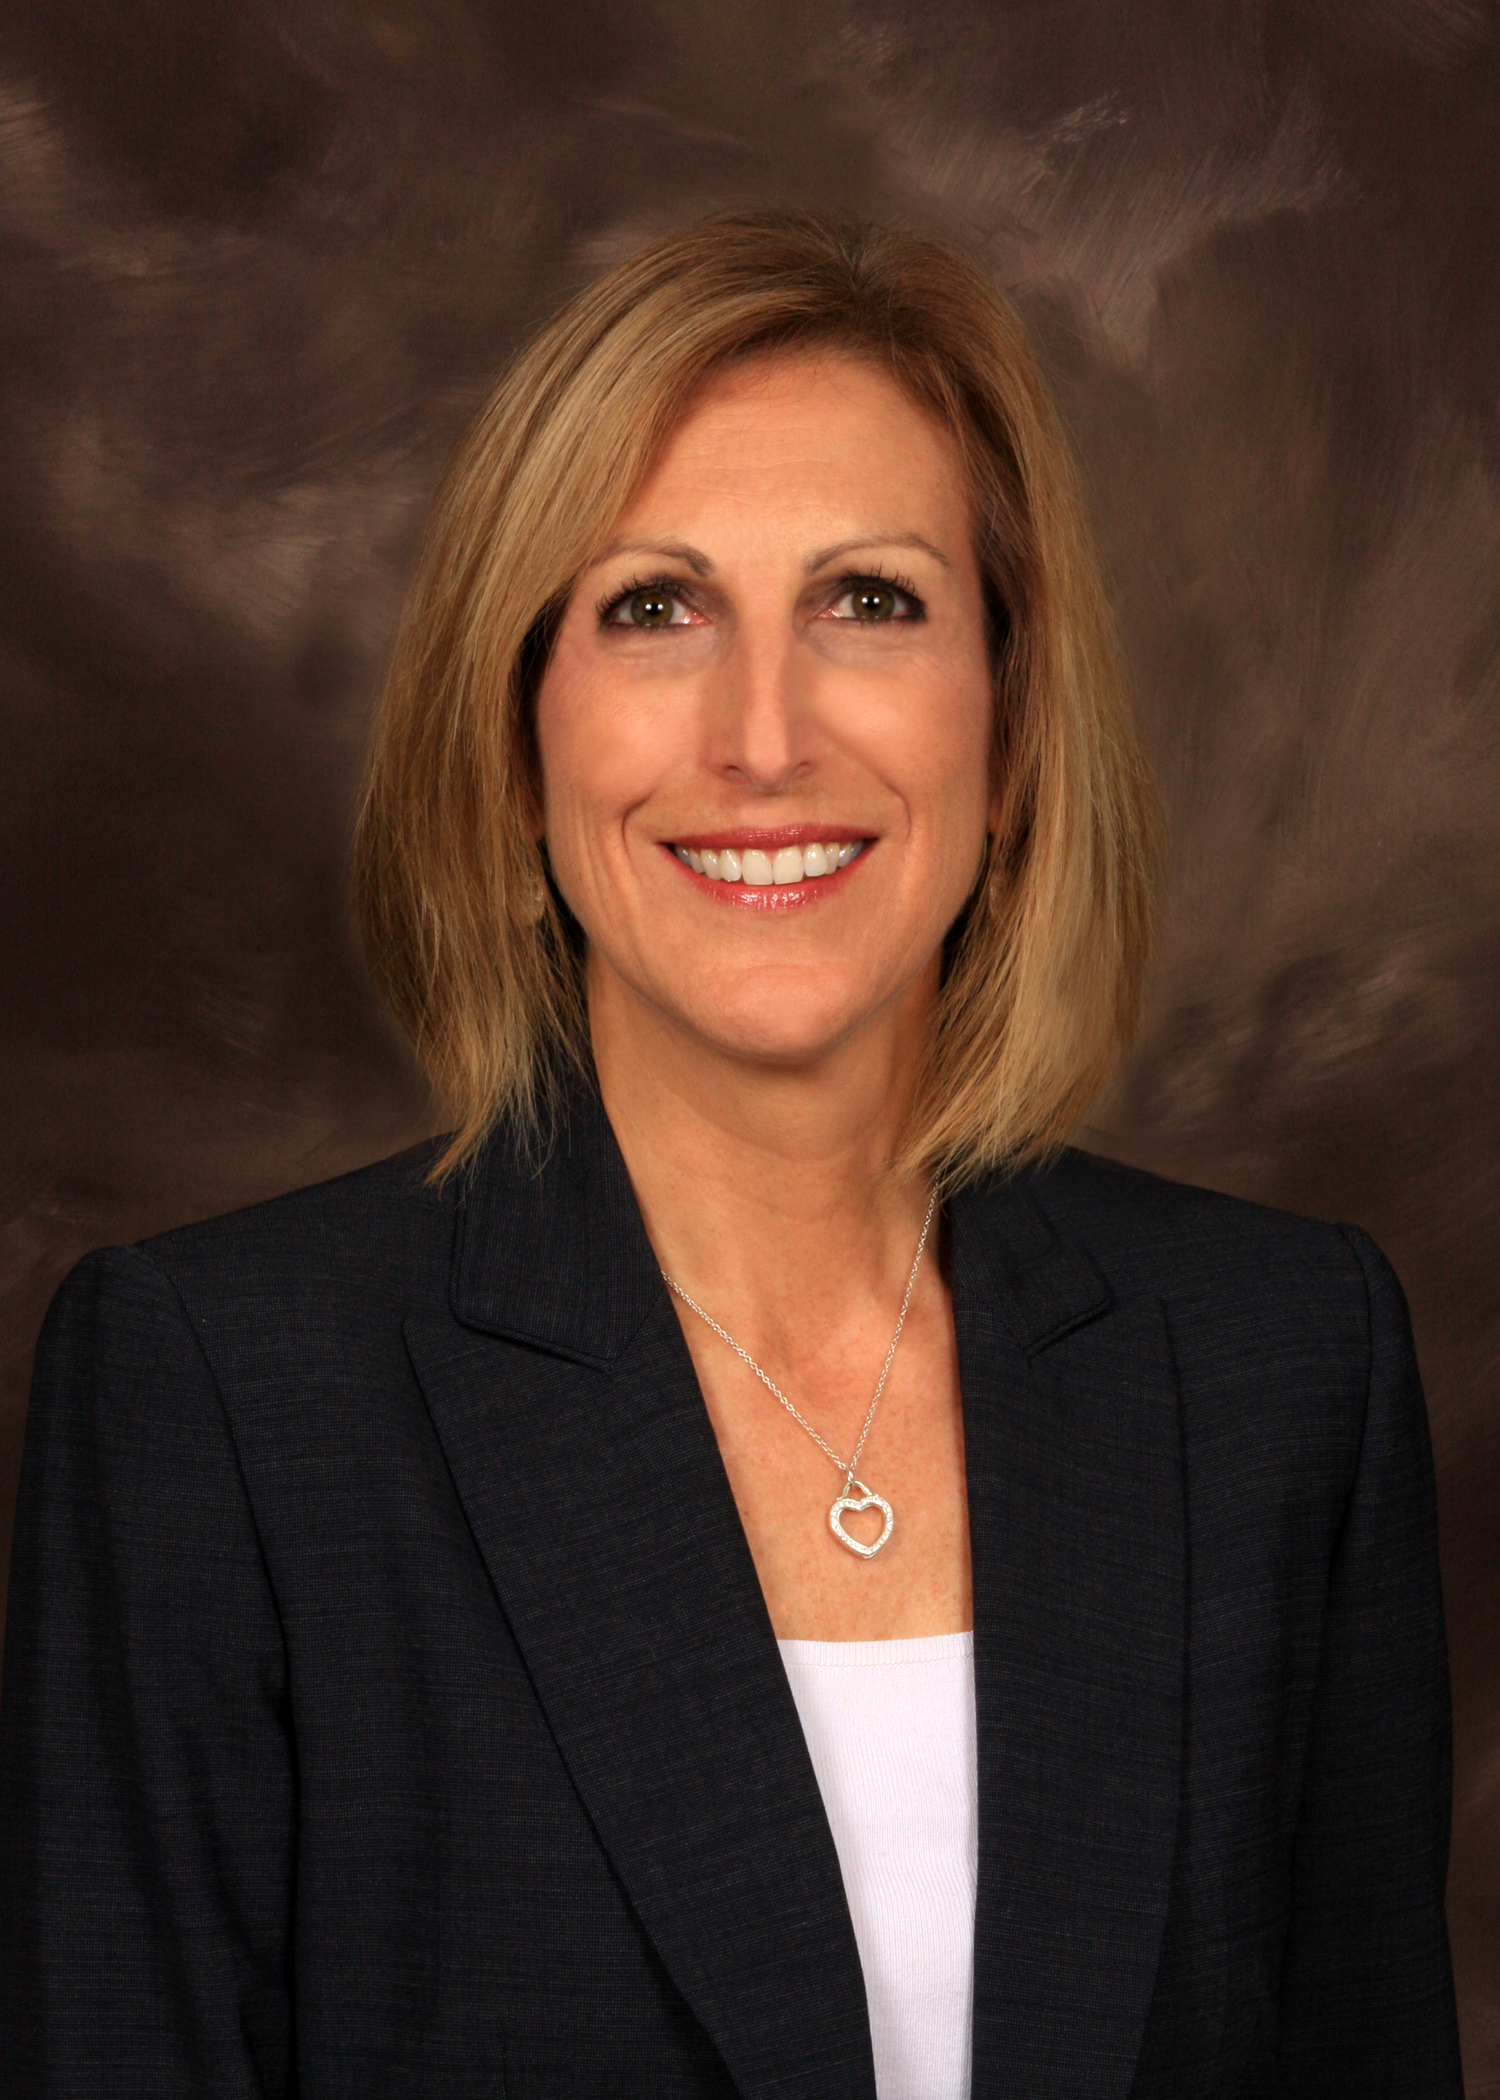 Robin McGuinness is Named Regional Chief Clinical Officer for the Florida Hospital West Florida